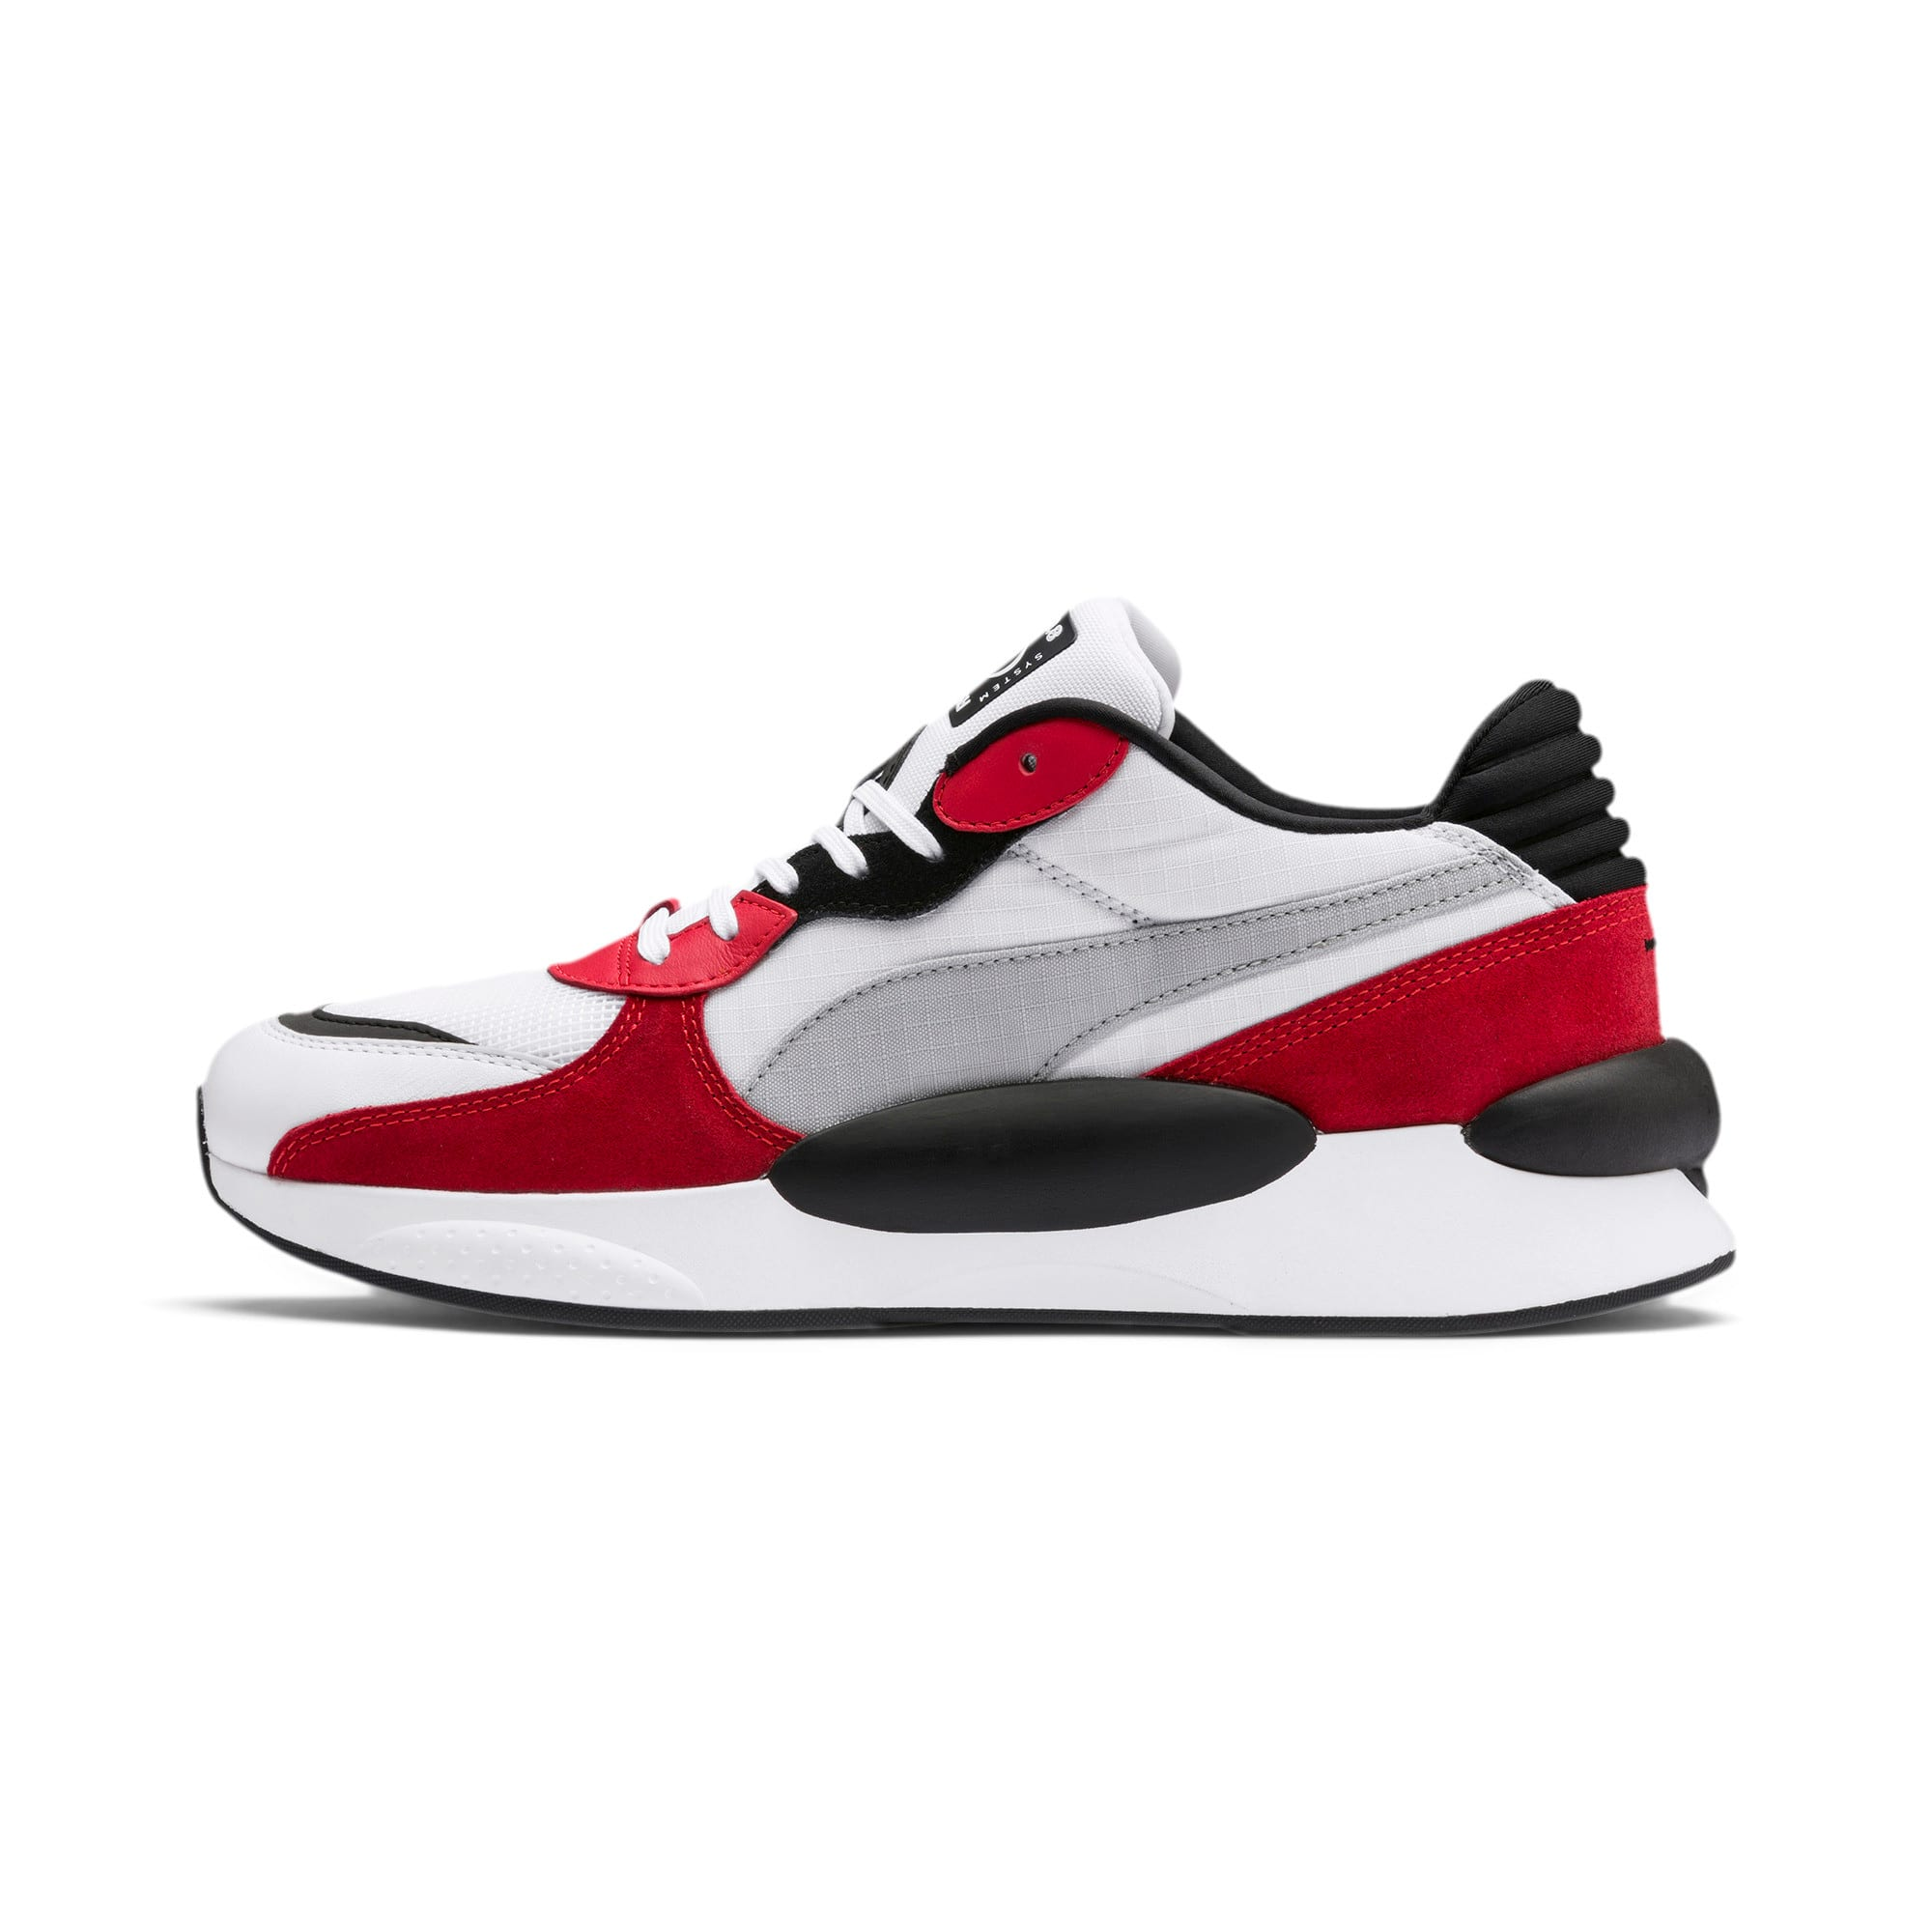 Thumbnail 1 of RS 9.8 Space sportschoenen, Puma White-High Risk Red, medium